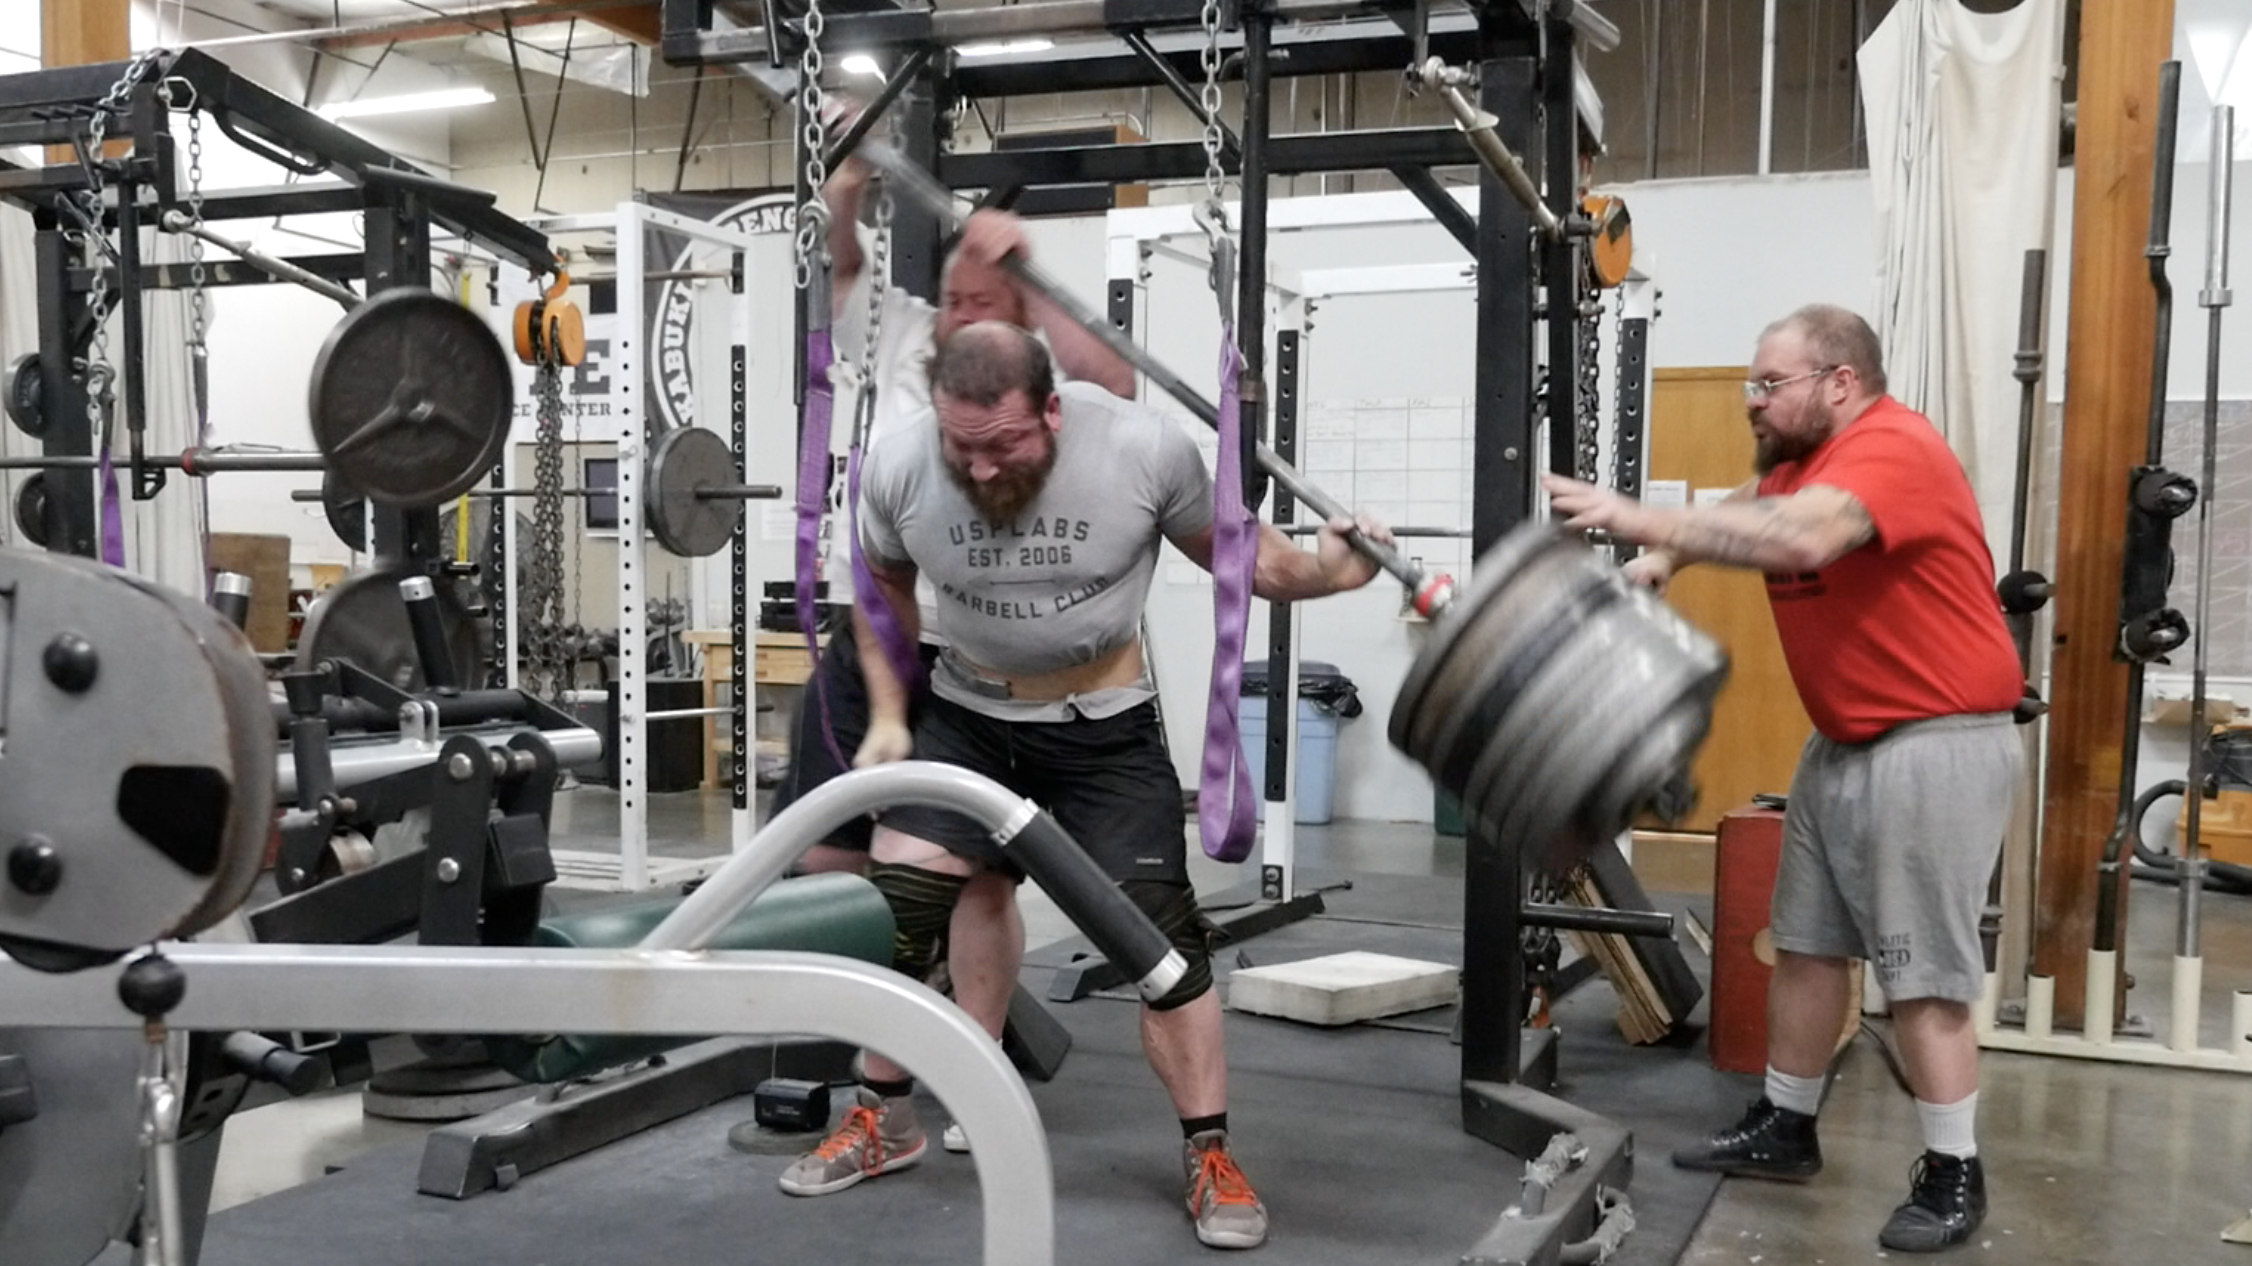 An Epic Gym Fail - and evaluation of goals and training ...